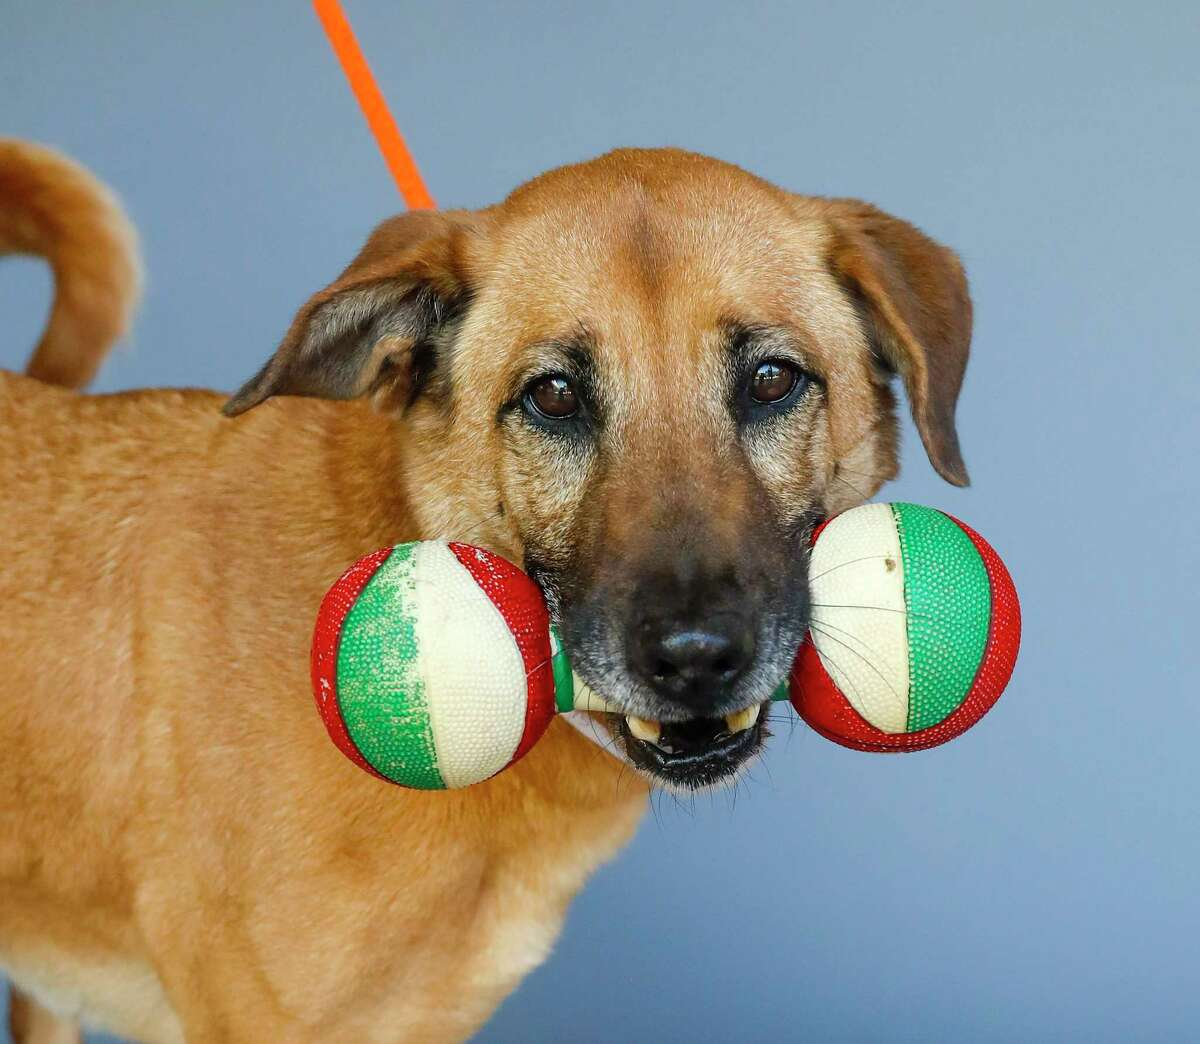 Moochie (43249795) is a 4-year-old, female, retriever mix available for adoption from the Houston Humane Society, in Houston, Tuesday, March 31, 2020. Moochie came into the shelter as an owner surrender after her owner passed away. When she was surrendered to the shelter, she came in with a special toy, given to her by her former owner, which rarely comes out of her mouth. She is a sweet dog who is heartworm positive, but her treatment is sponsored, and would be of no cost to anyone who adopts Moochie. Moochie was recently returned to the shelter, as it was determined that she would do better as the only animal in the household.